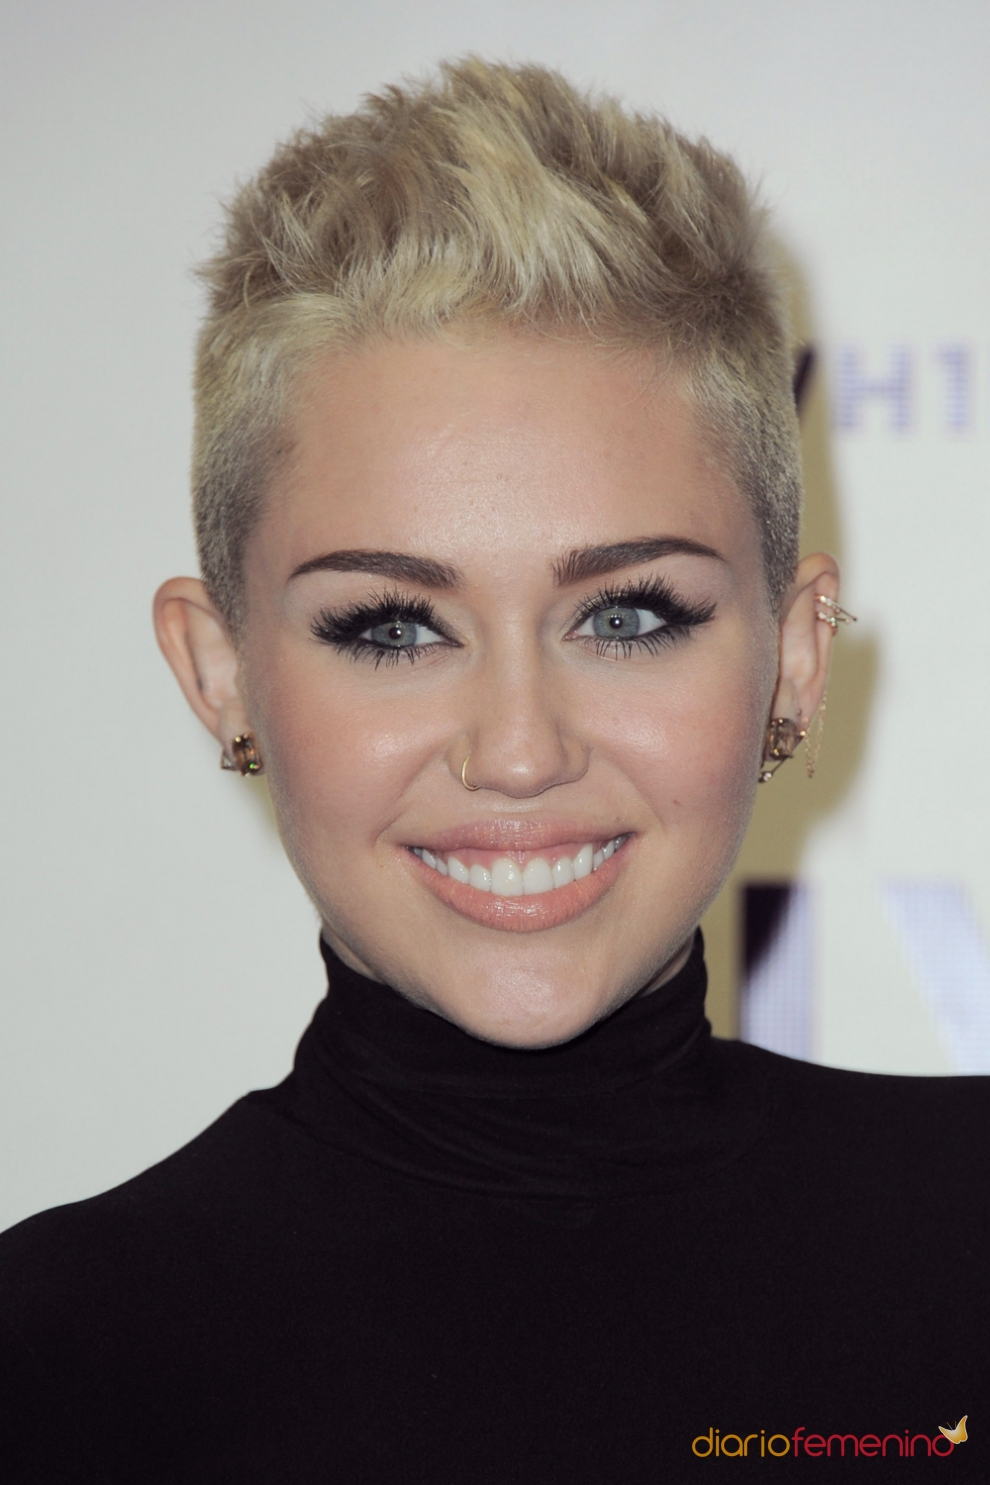 181 best Hannah montana images on Pinterest Celebrities, Miley Hannah montana miley pictures